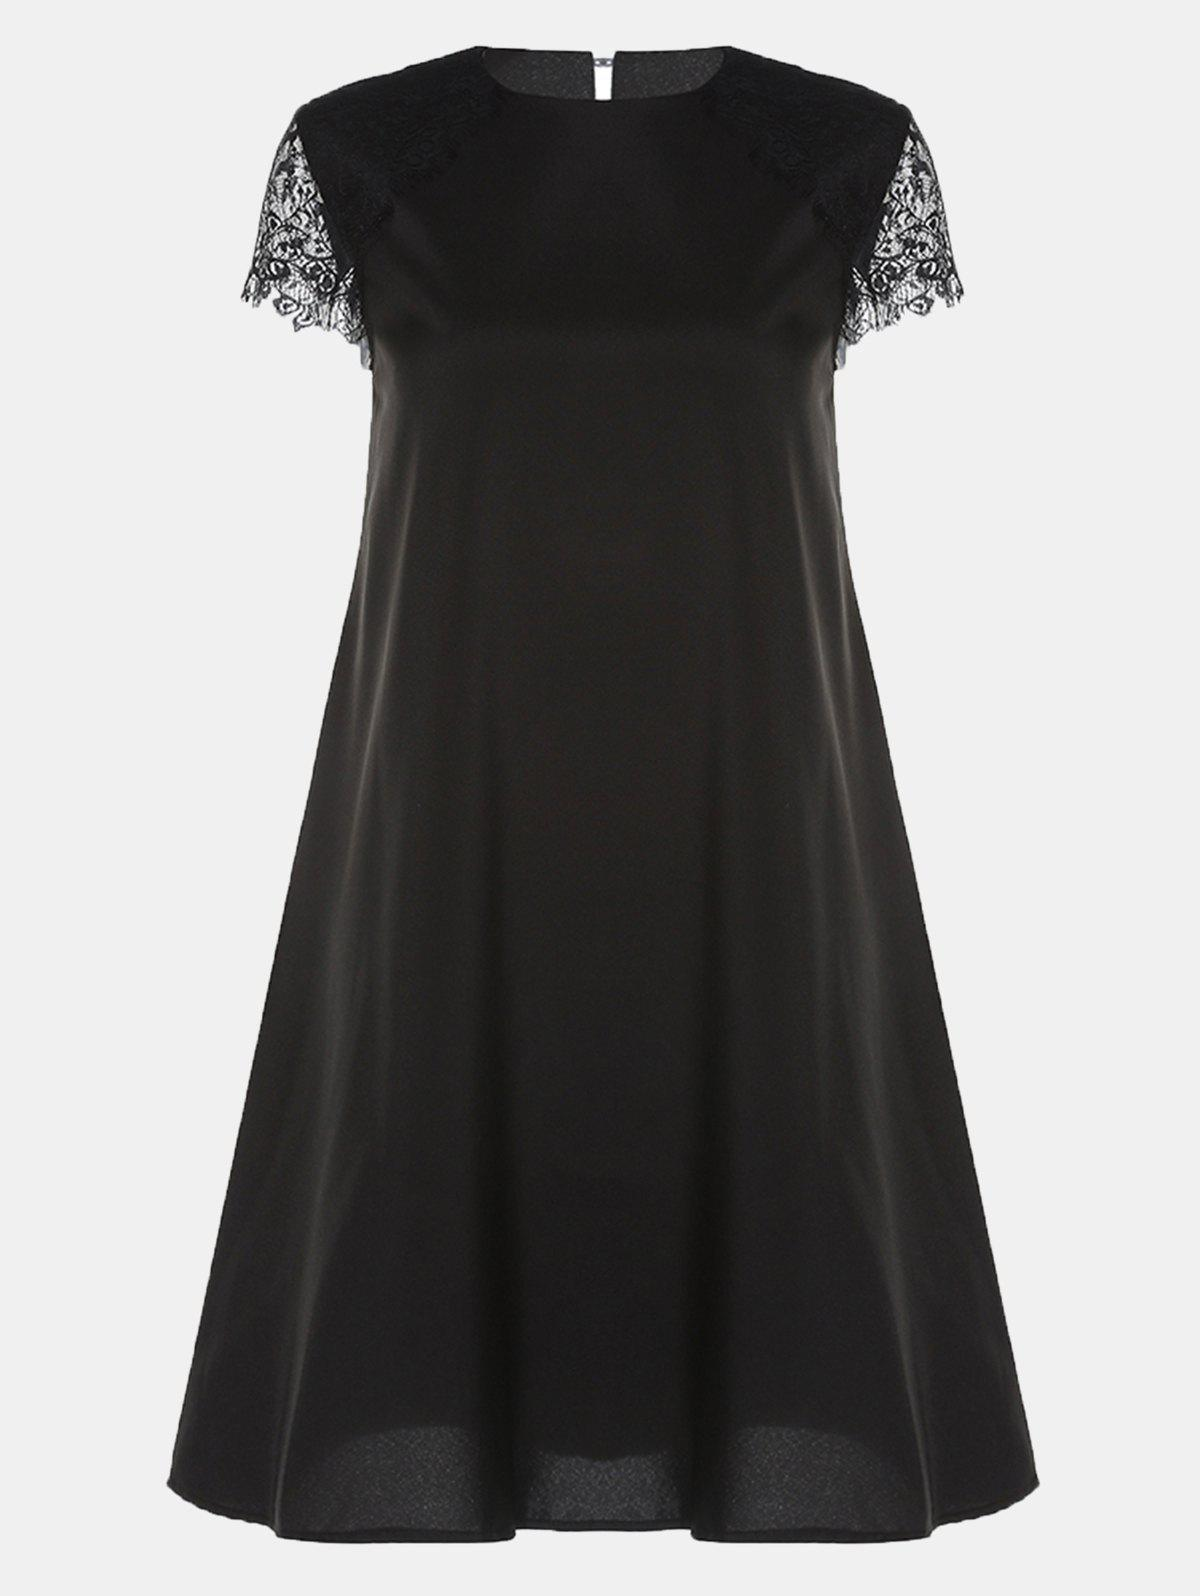 Round Collar Lace Short Sleeve Loose A-line Dress - BLACK M